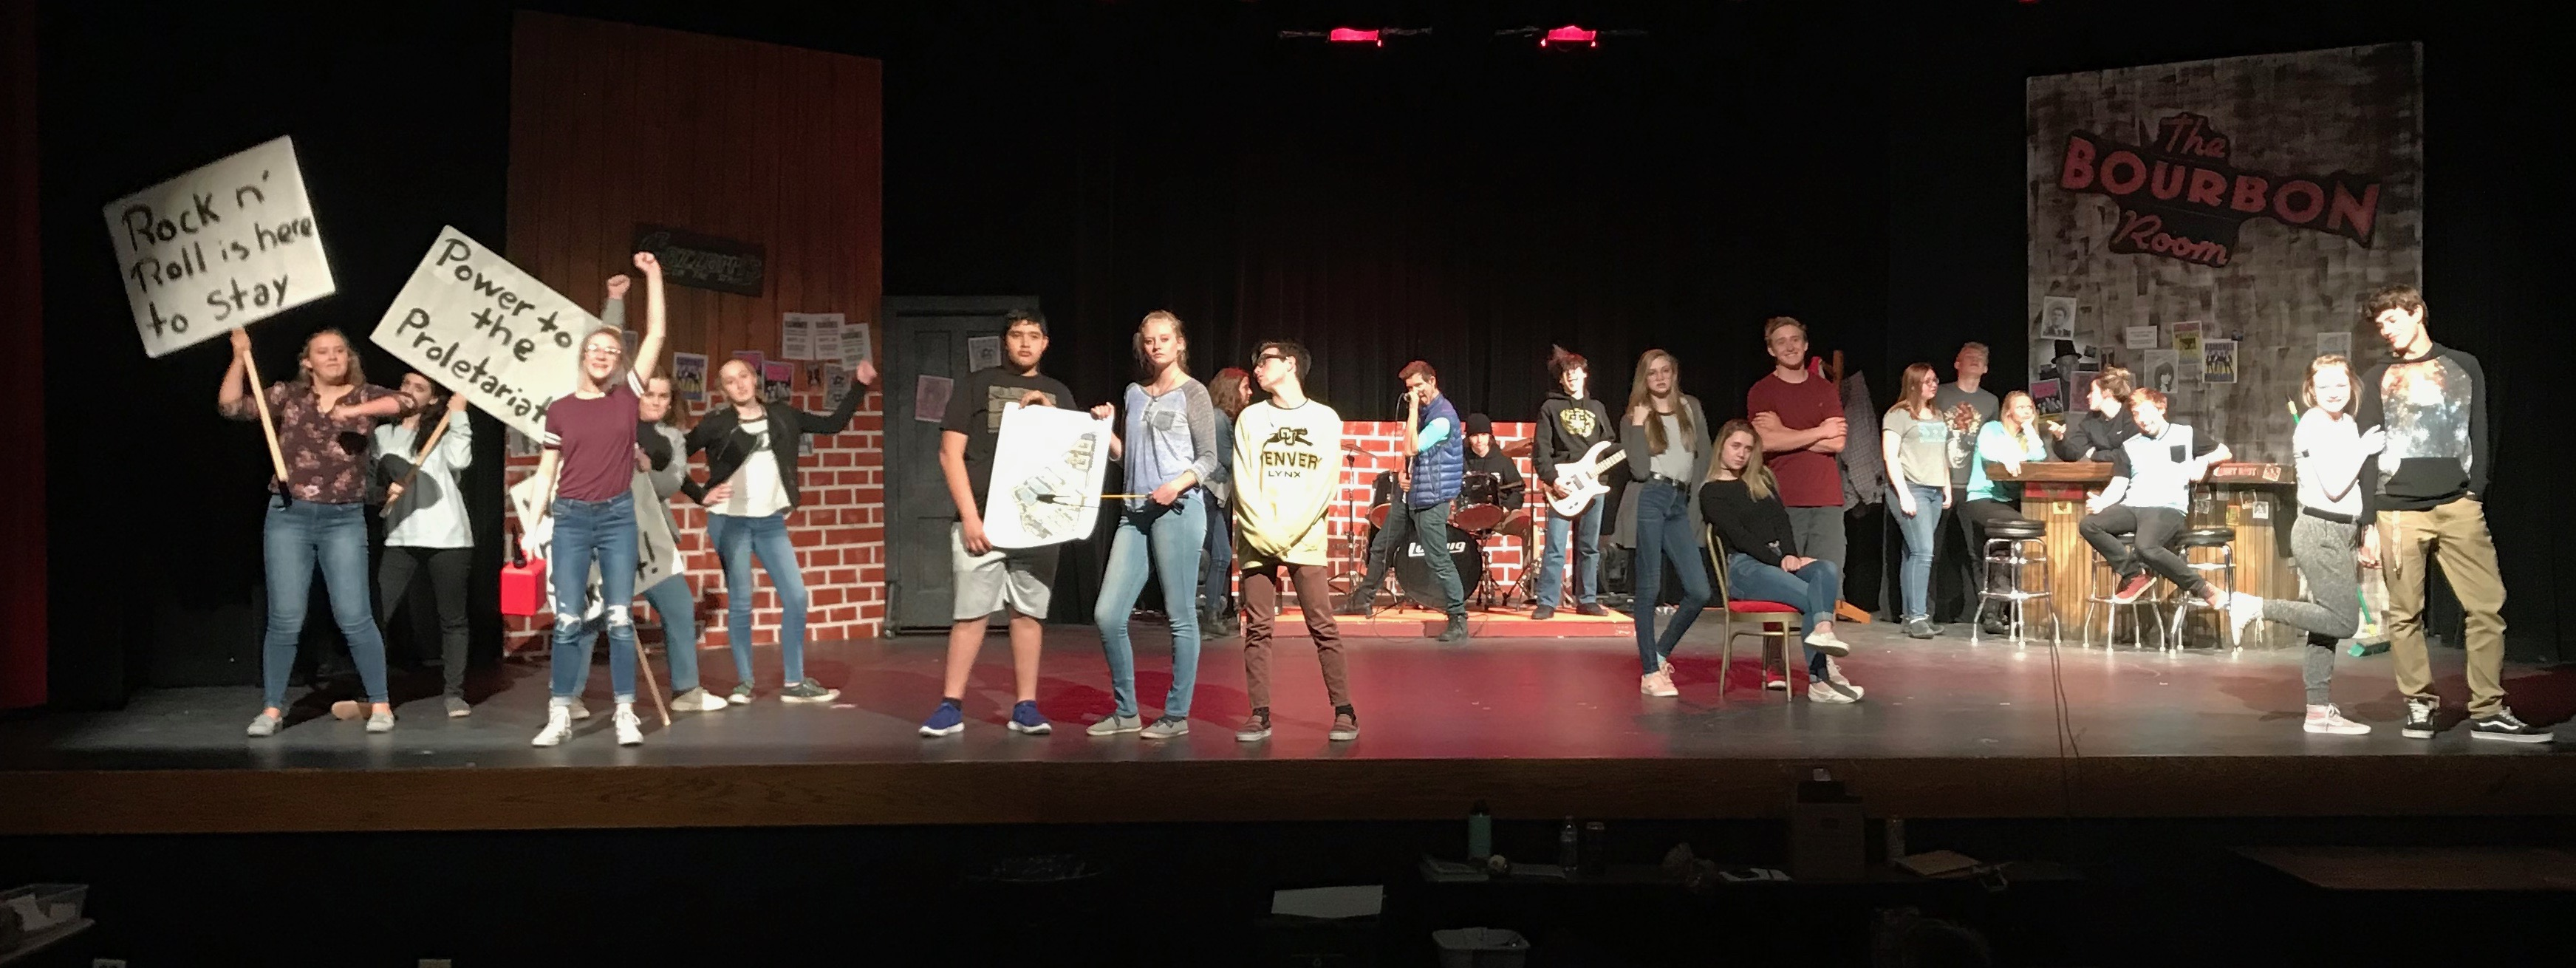 """Middle Park High School Drama Club in a cast photo for the 2018 Spring Play, """"Rock of Ages"""""""